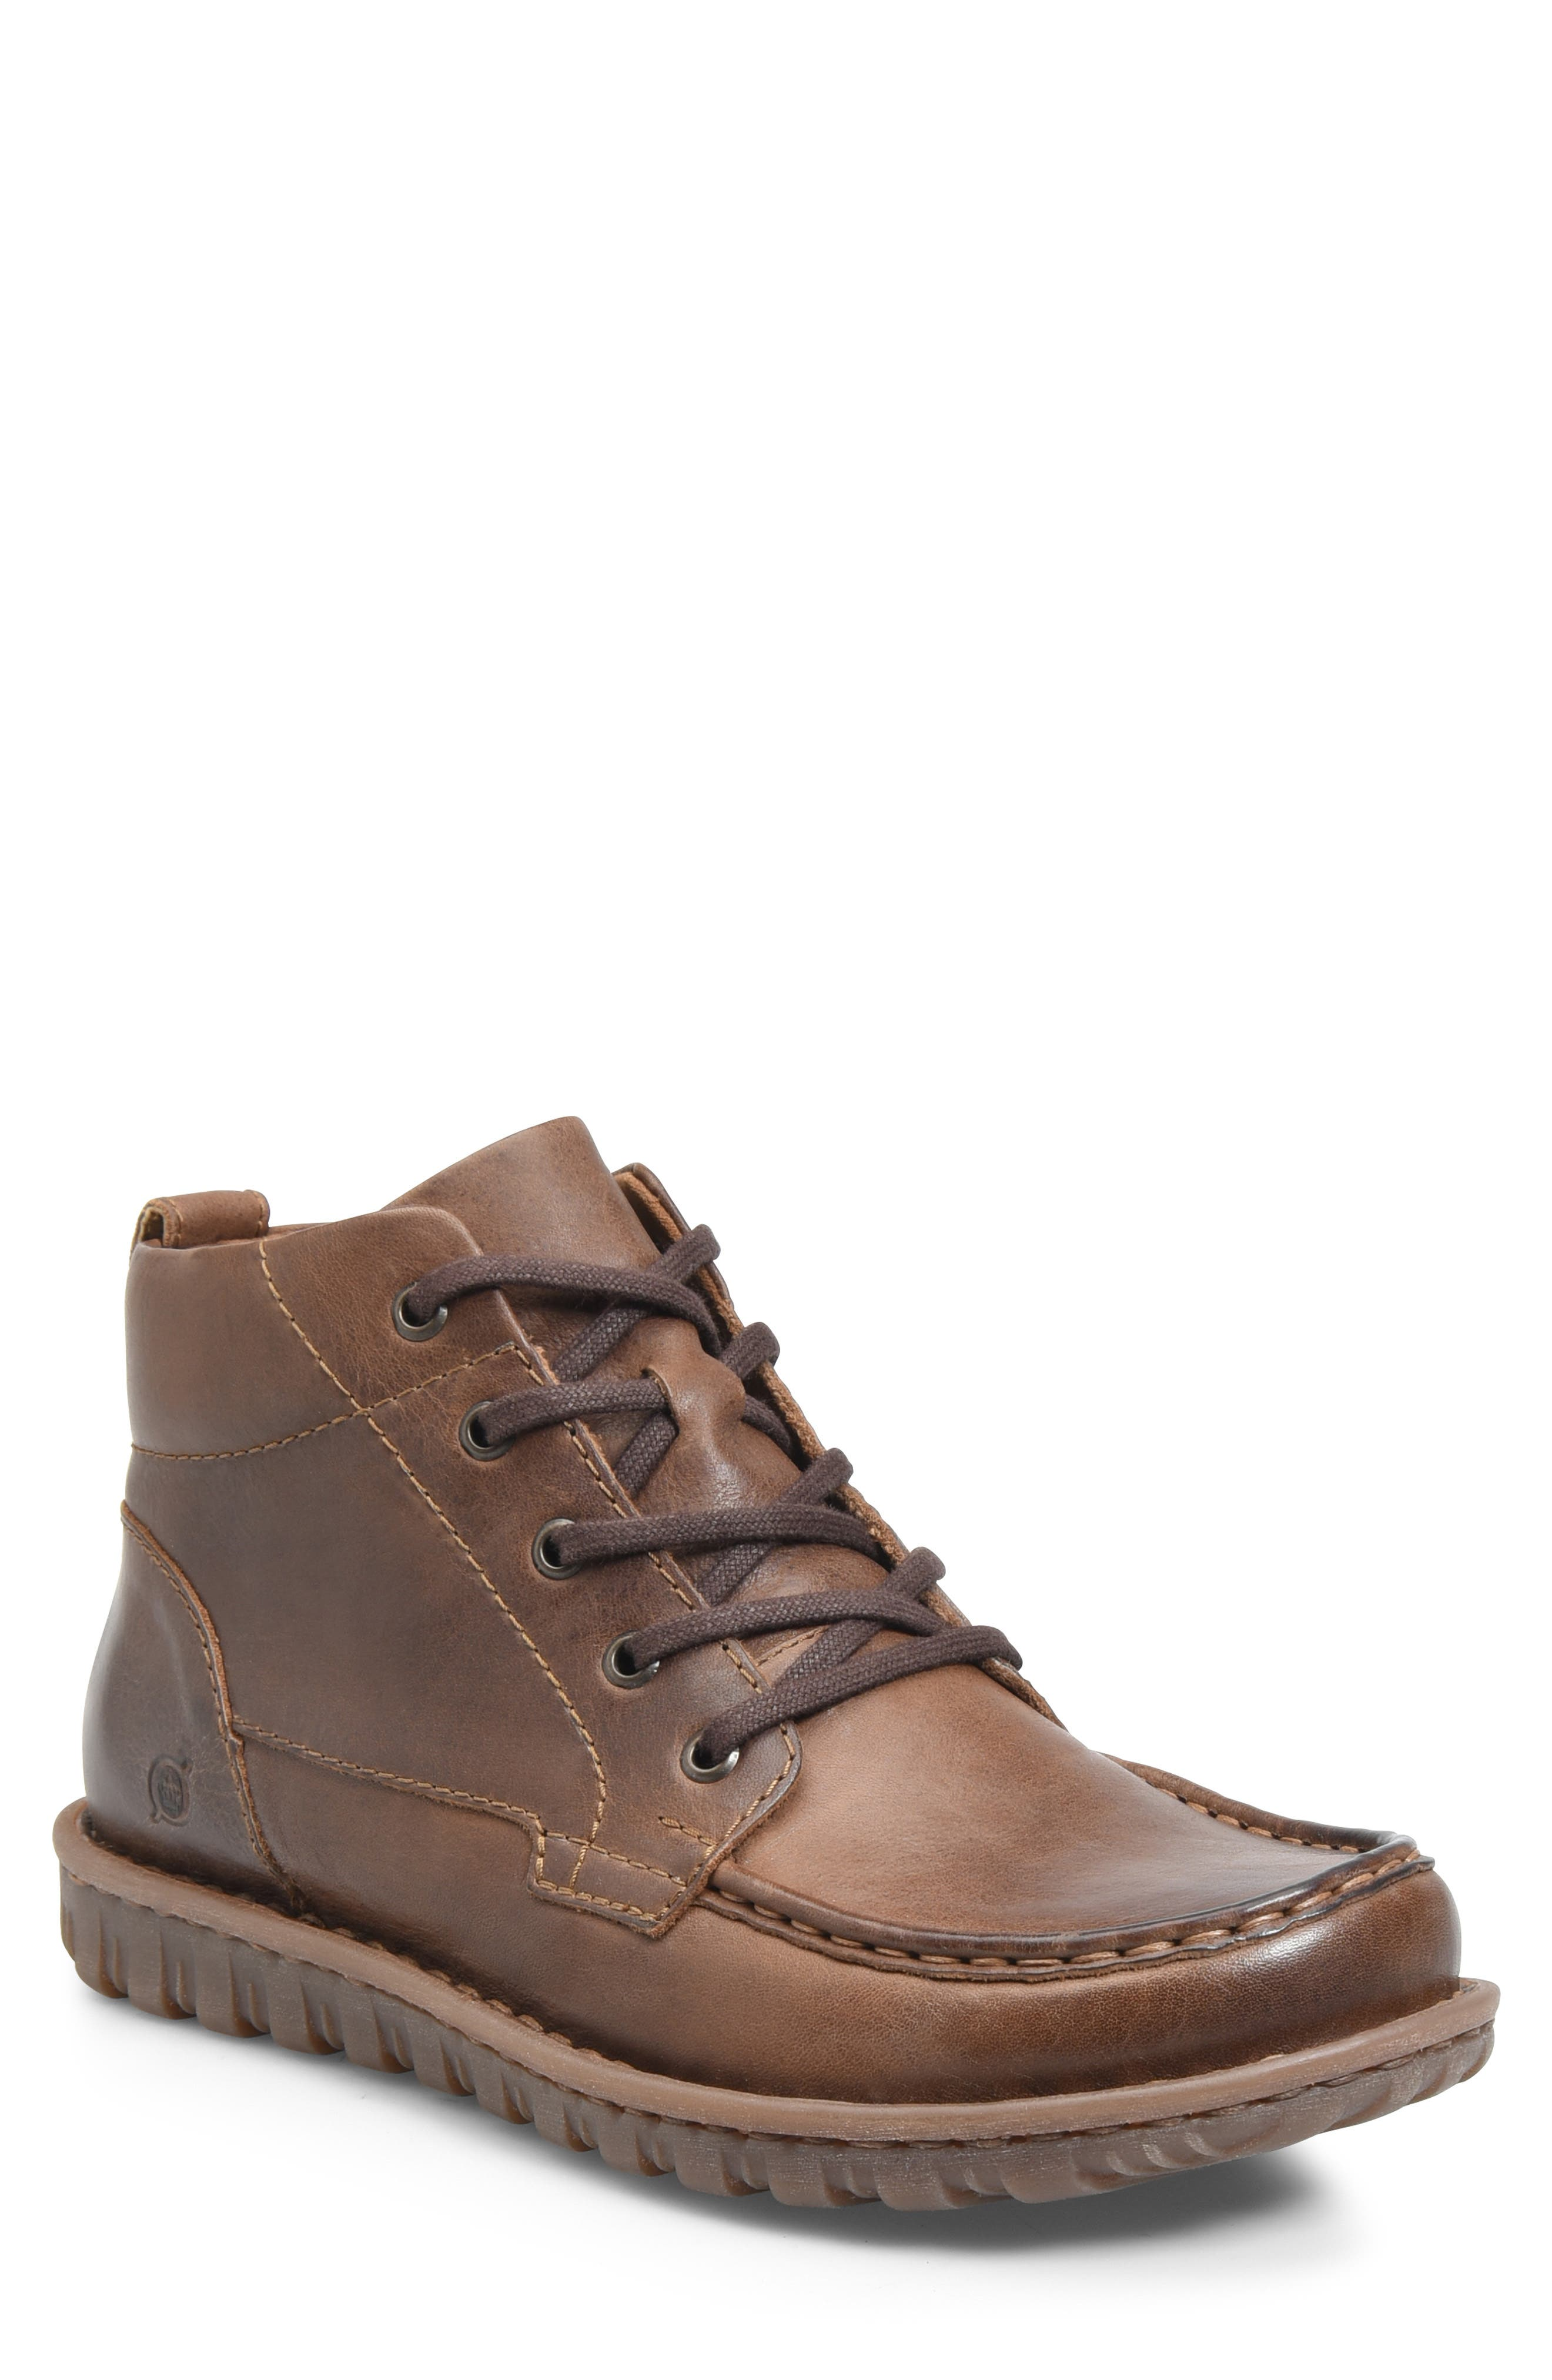 BØRN, Gilden Moc Toe Boot, Main thumbnail 1, color, BROWN LEATHER